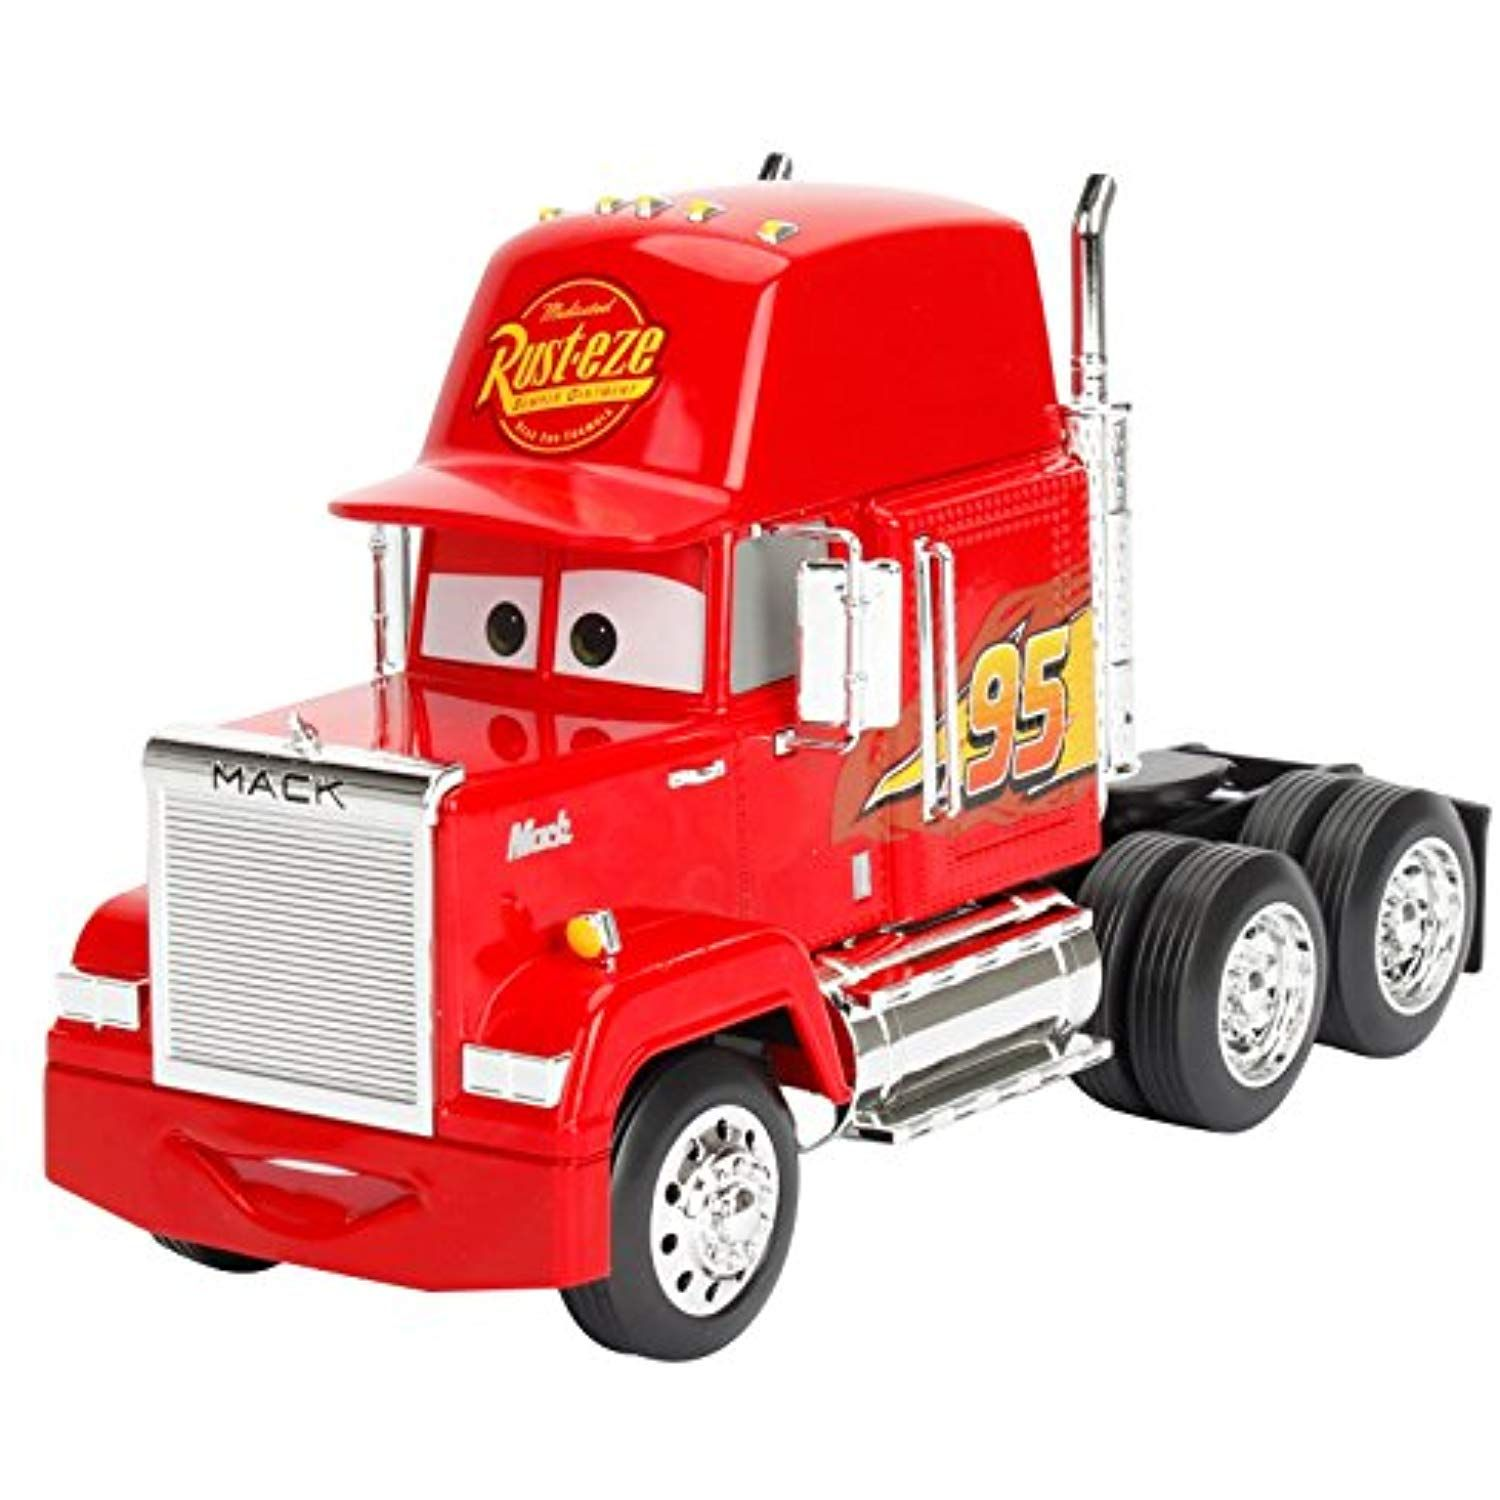 Metals Disney Pixar Cars 3 Mack Rust Eze Tractor Die Cast